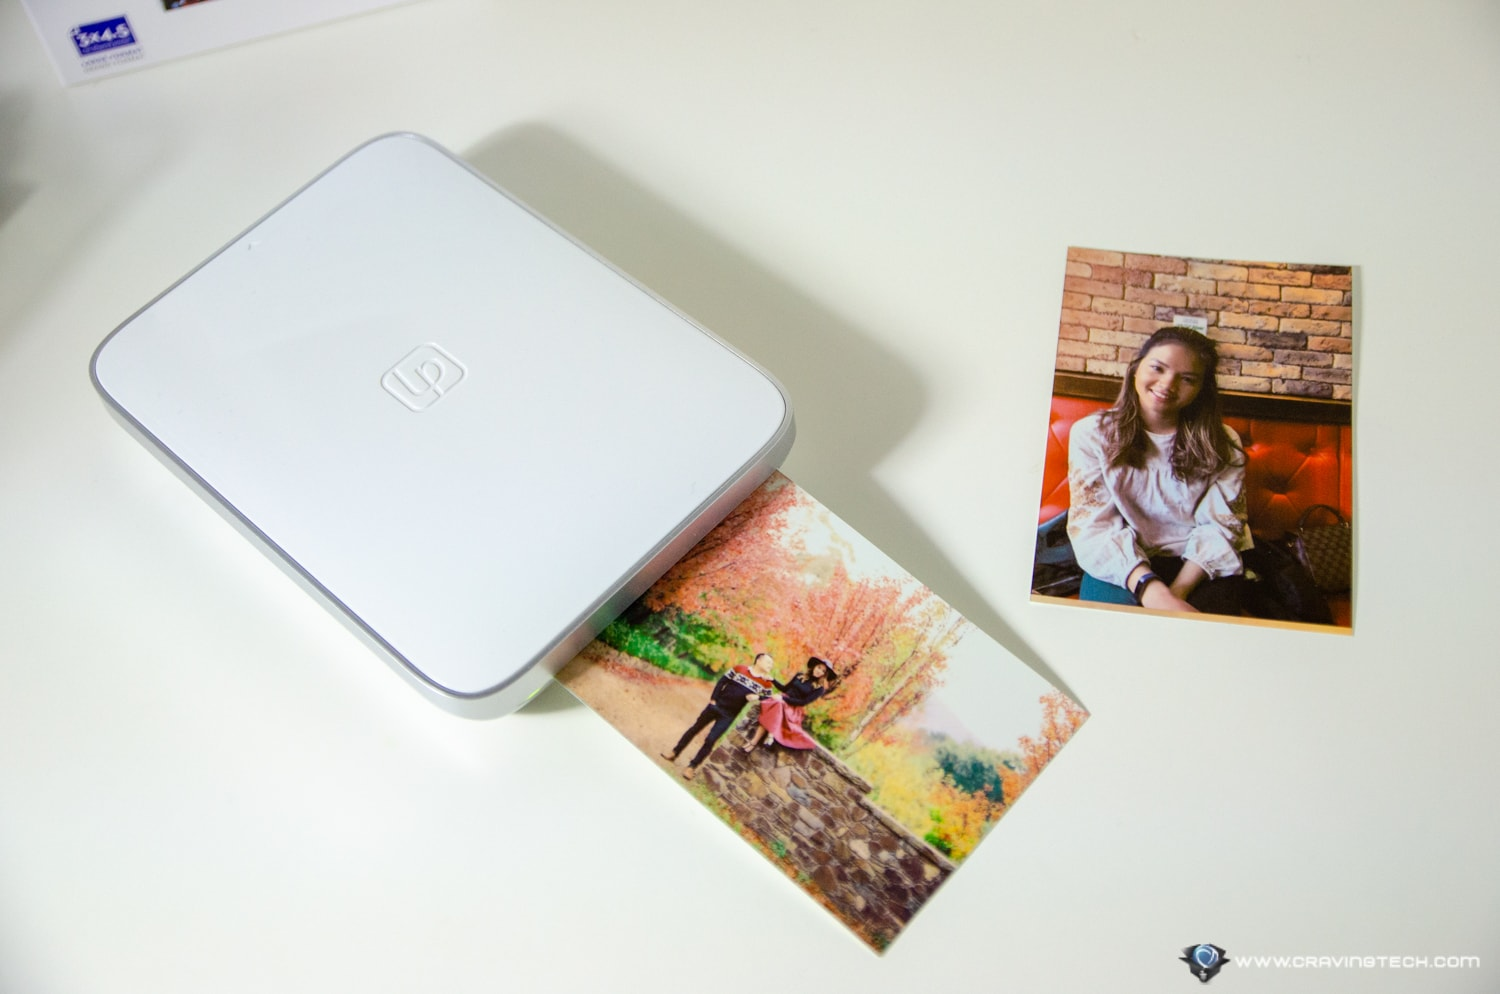 Print Apple Live Photos & GoPro Videos with this portable photo printer